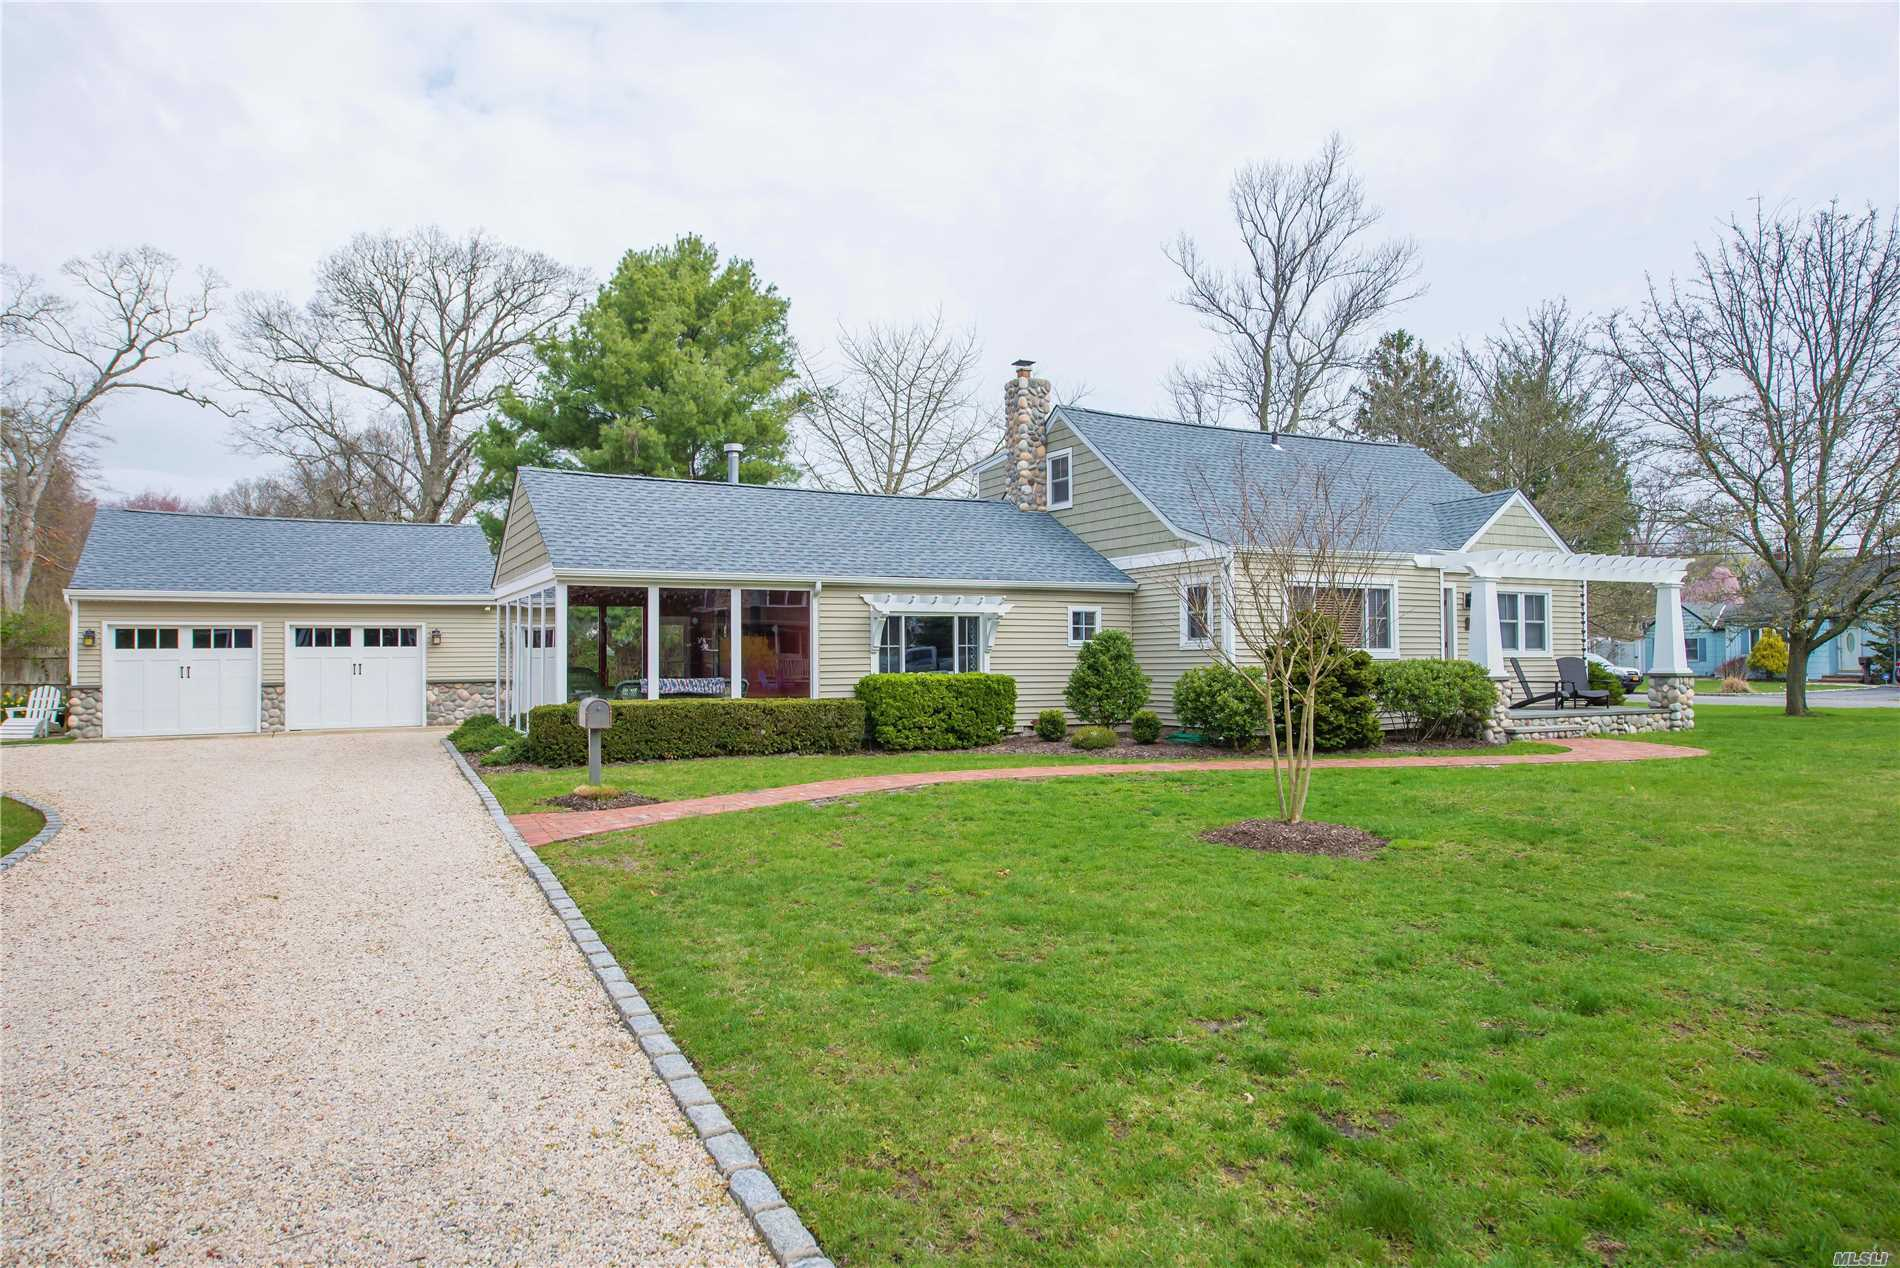 Fantastic Expanded Cape in West Islip's Pine Lake Neighborhood! A thoroughly updated 4 bedroom 2 bathroom home with a 2 car detached garage. Very private half acre of property on a cul de sac. Beautiful architectural details, and a show stopping indoor outdoor living space with removable windows and screens. Move right in!